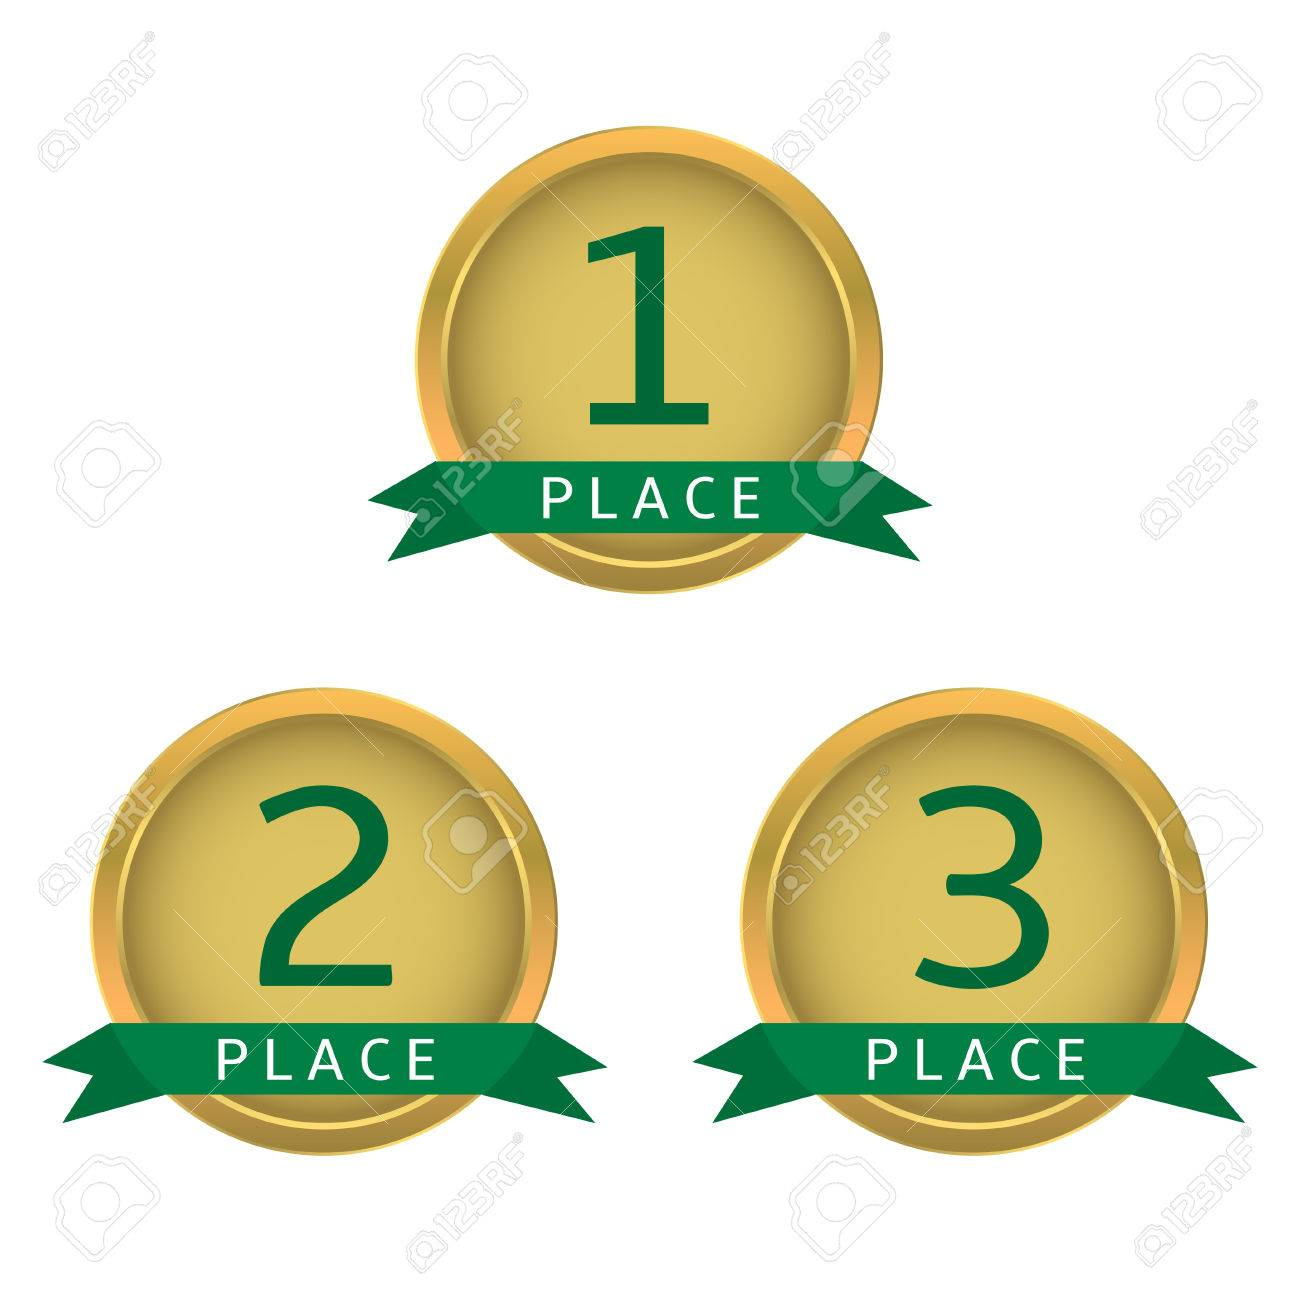 hight resolution of first place second place third place golden labels with